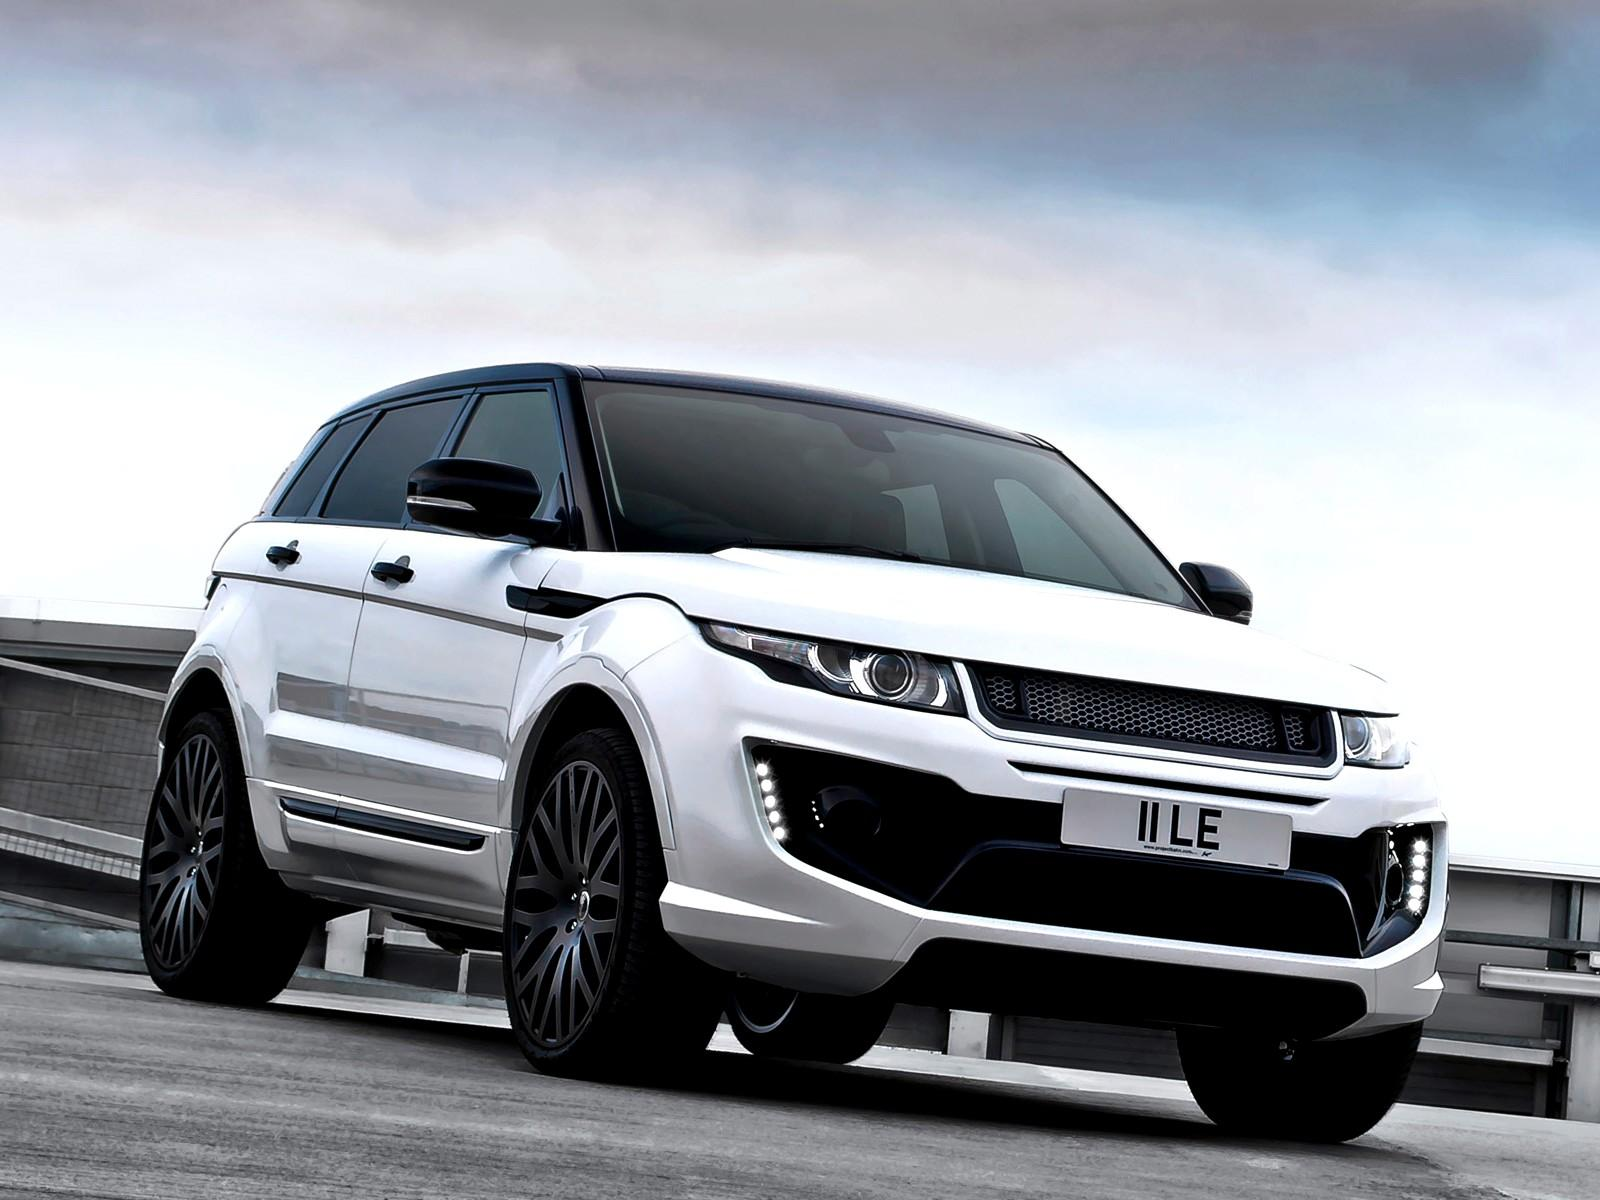 range rover evoque wallpaper hd download. Black Bedroom Furniture Sets. Home Design Ideas